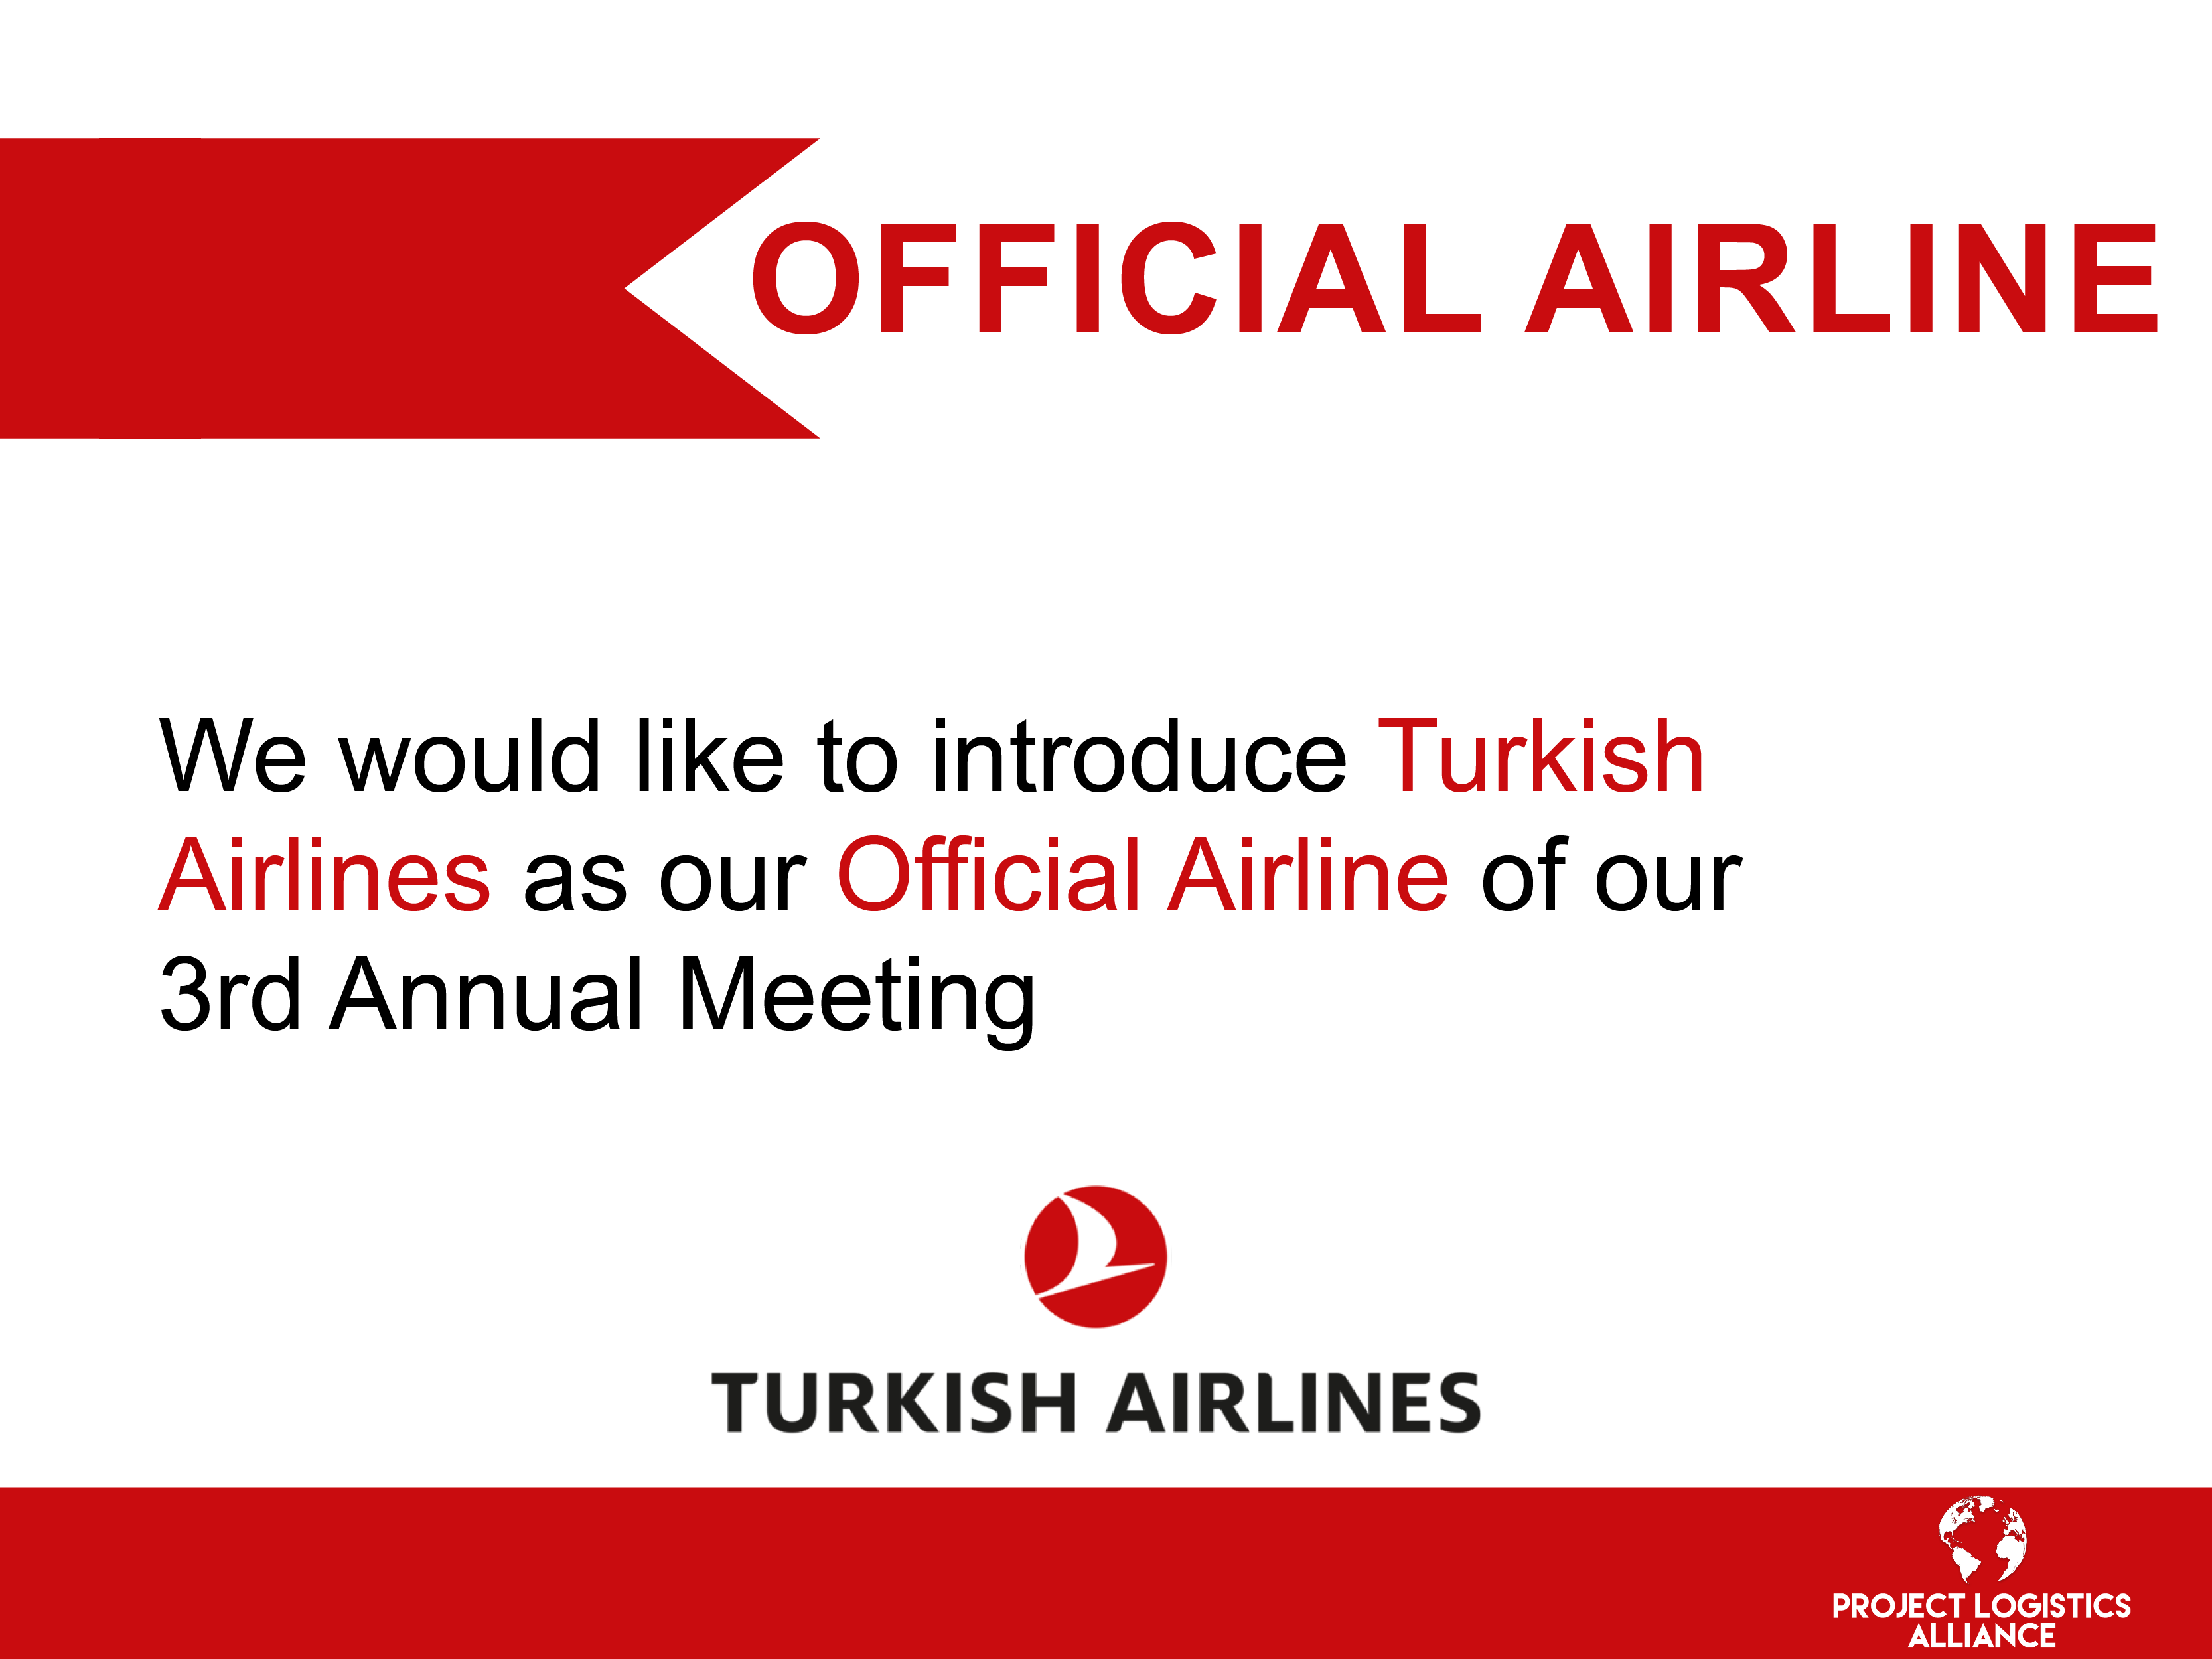 The Project Logistics Alliance Announces Unique Cooperation with Turkish Airlines